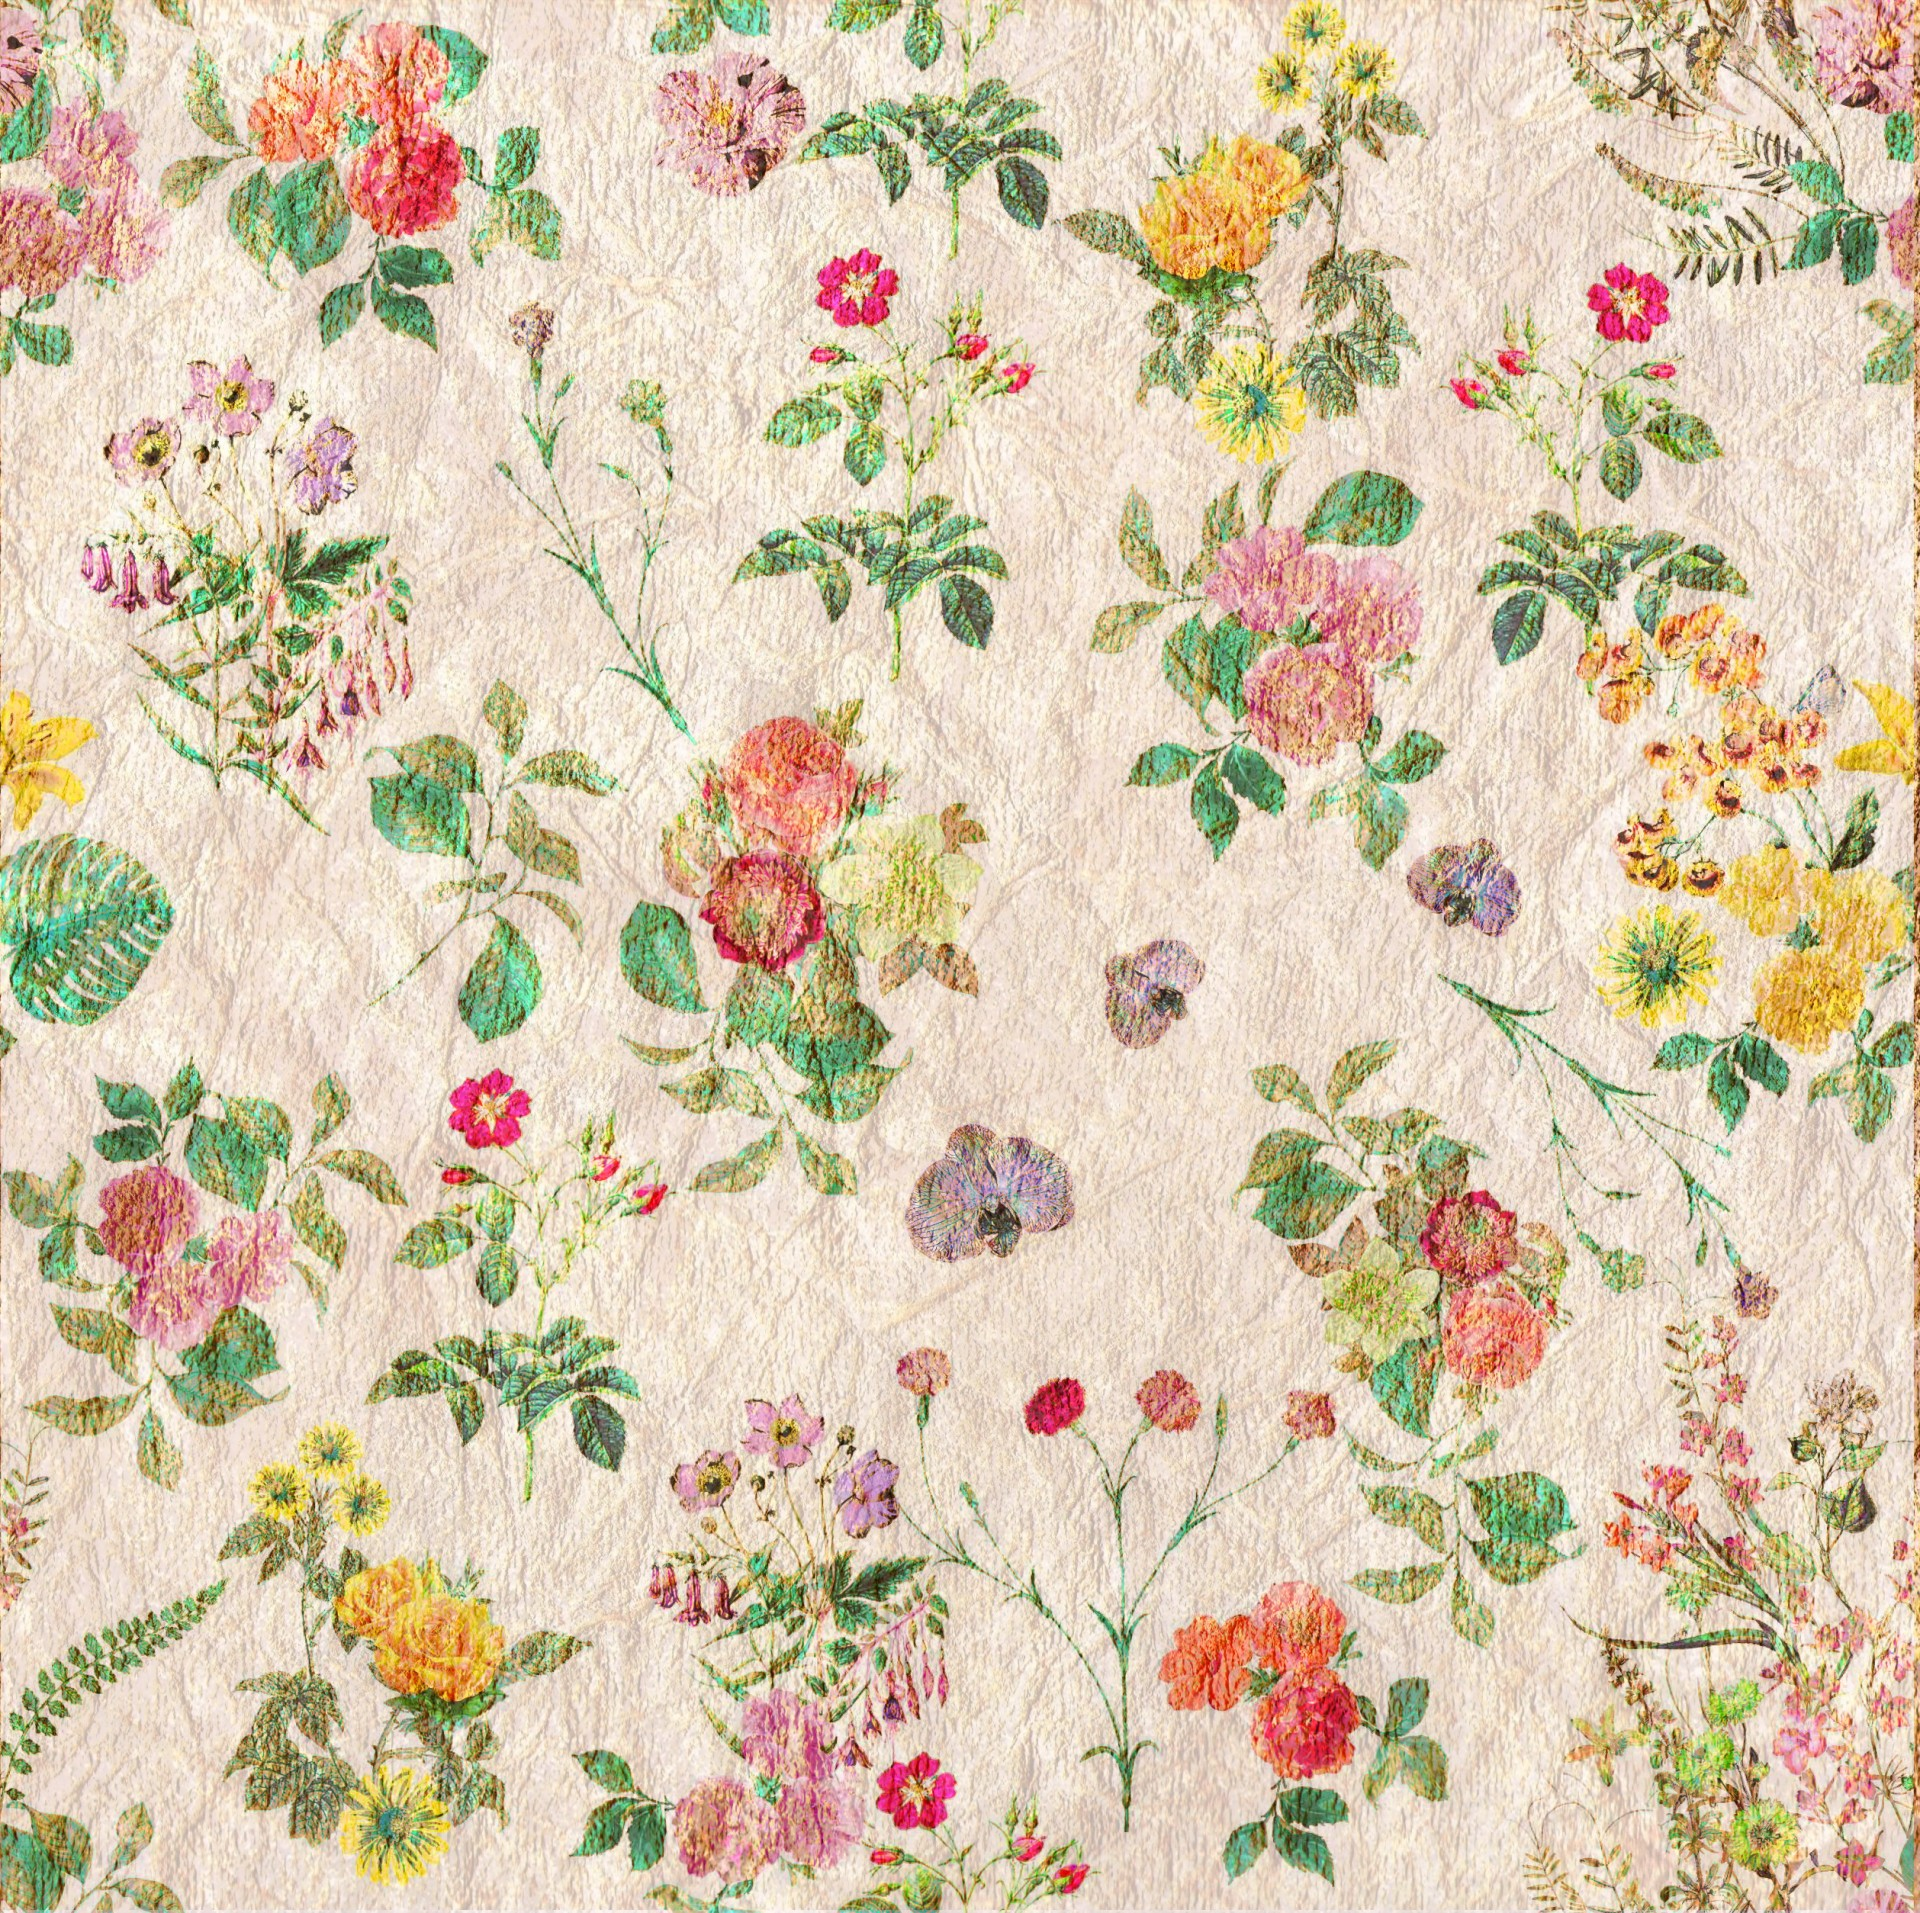 Vintage Flowers Wallpaper Pattern Free Stock Photo Public Domain Pictures